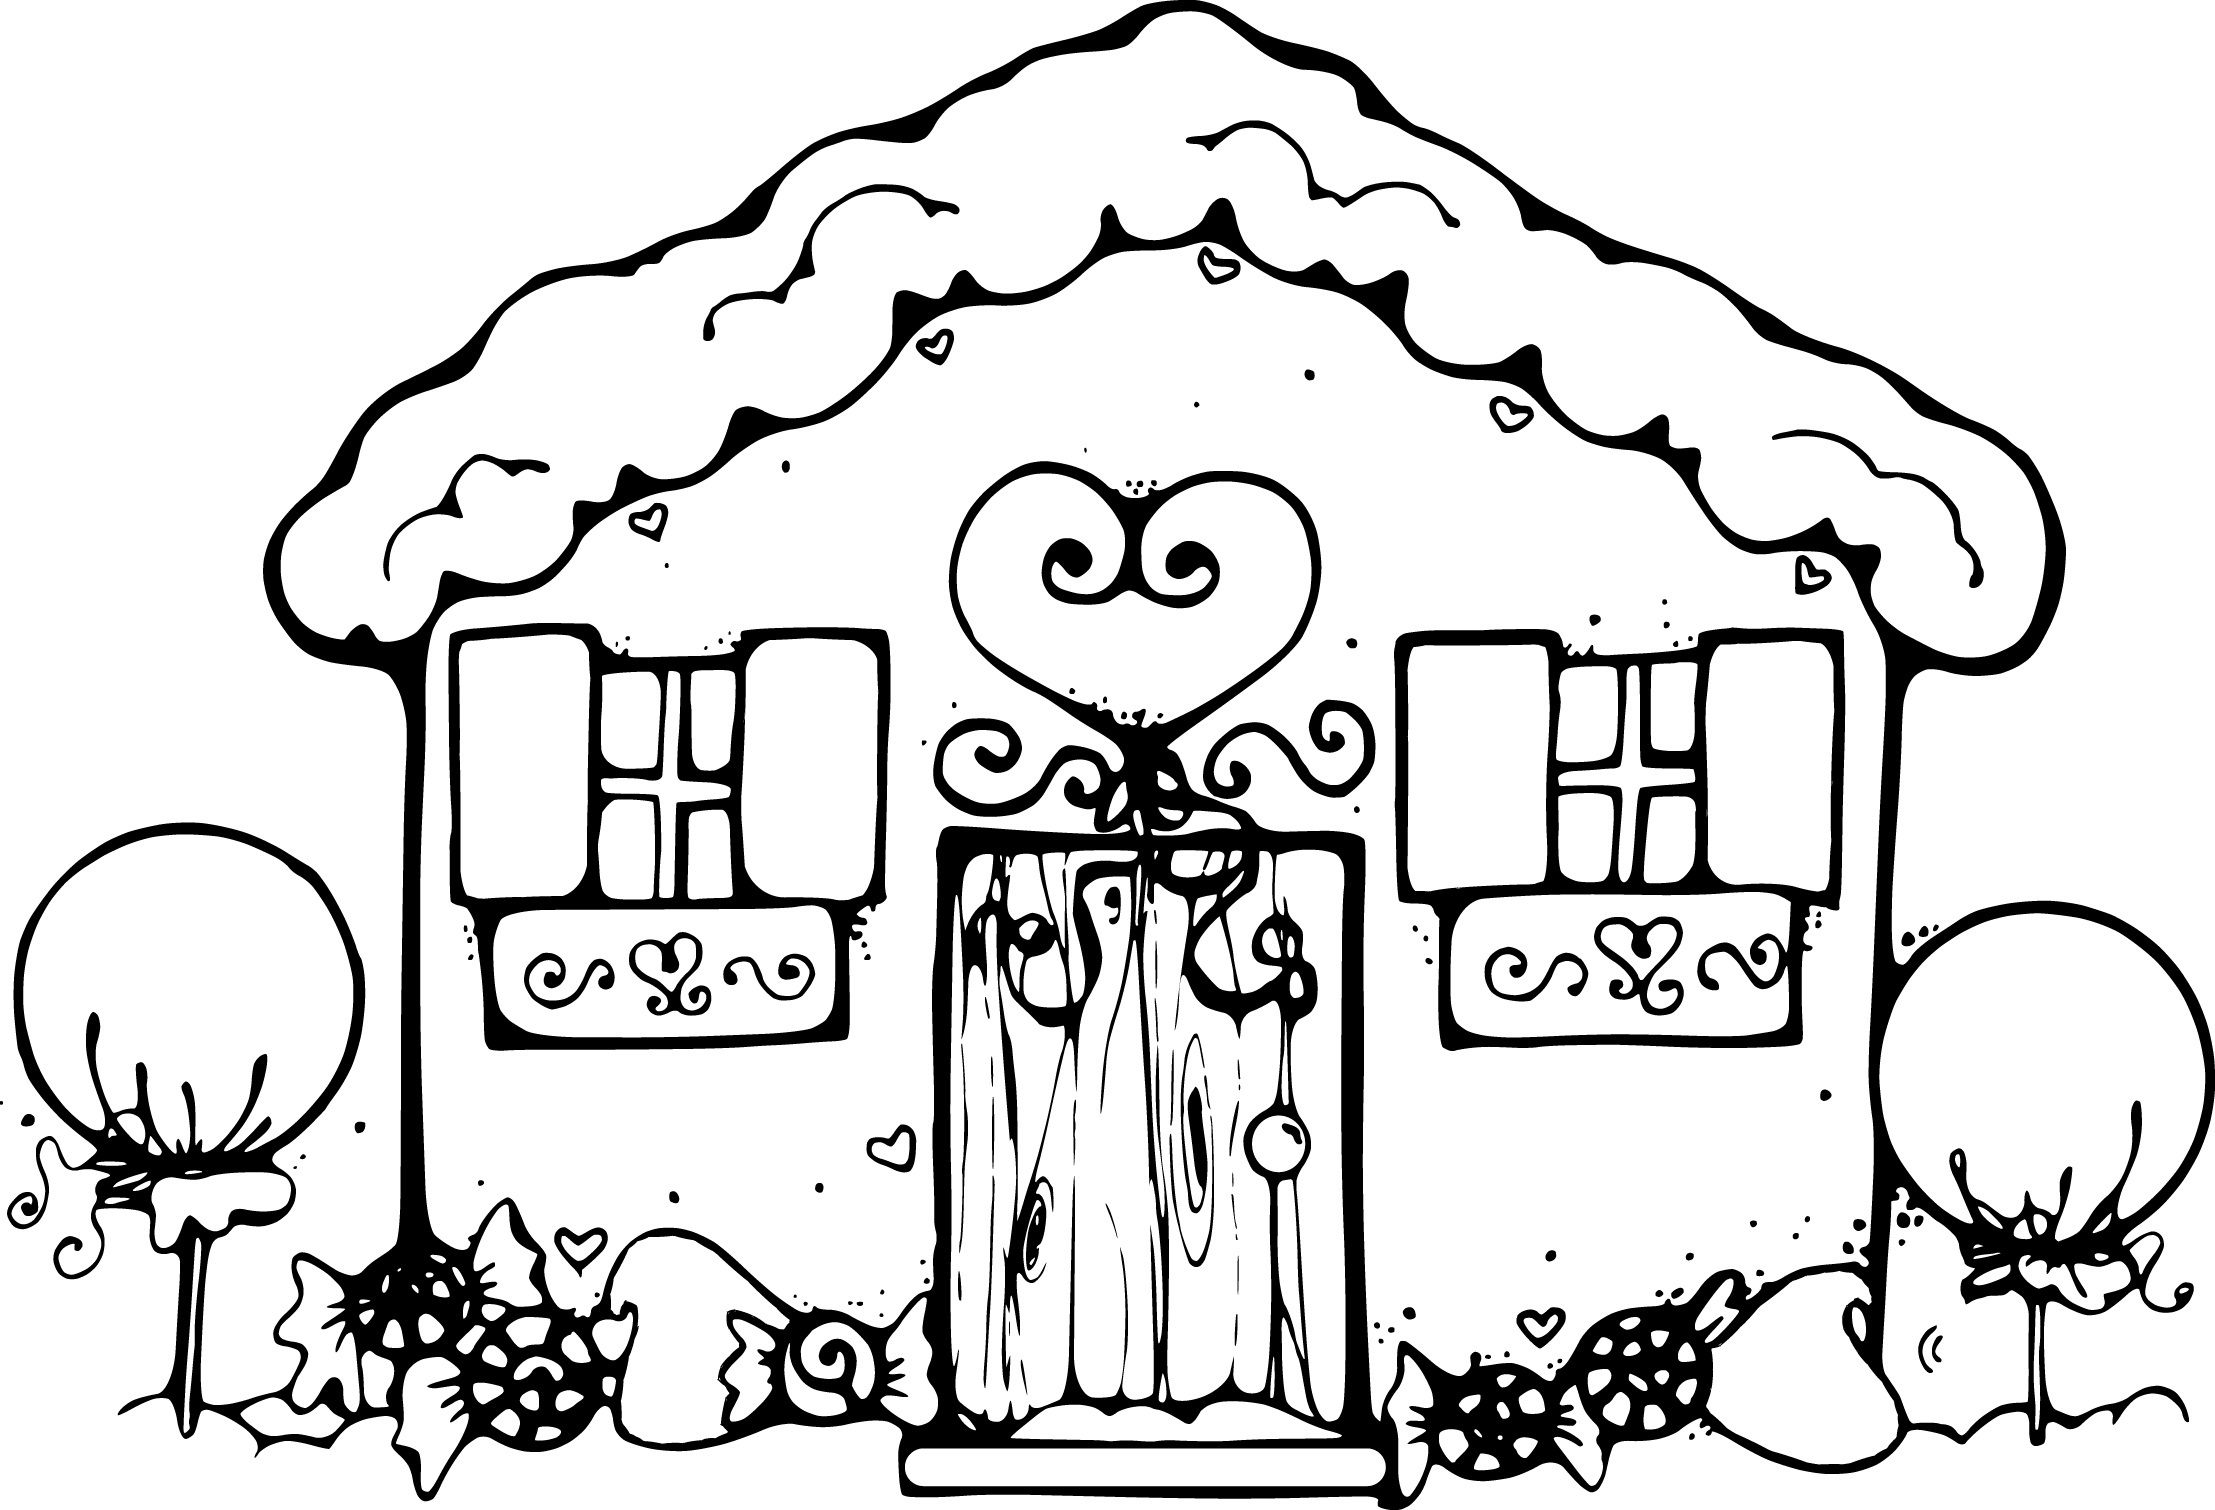 gingerbread house coloring sheet printable gingerbread house coloring pages for kids coloring sheet house gingerbread